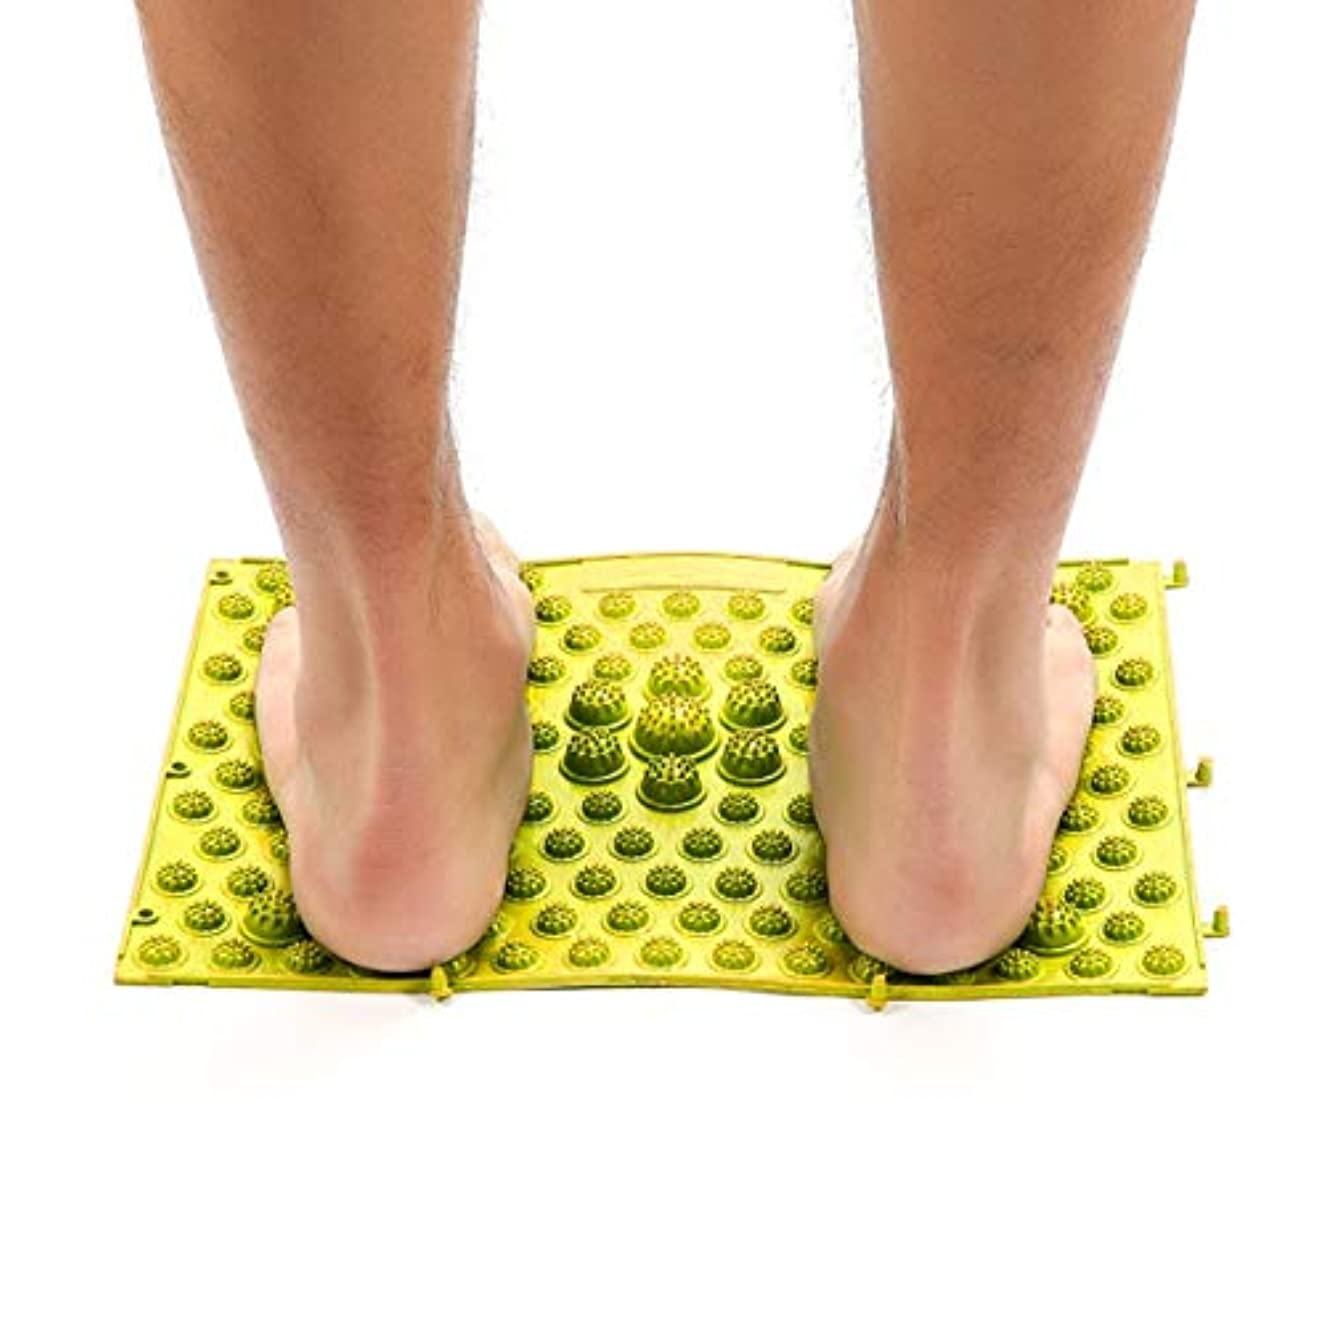 無実汗所持Acupressure Foot Mats Running Man Game Same Type Foot Reflexology Walking Massage Mat for Pain Relief Stress Relief...